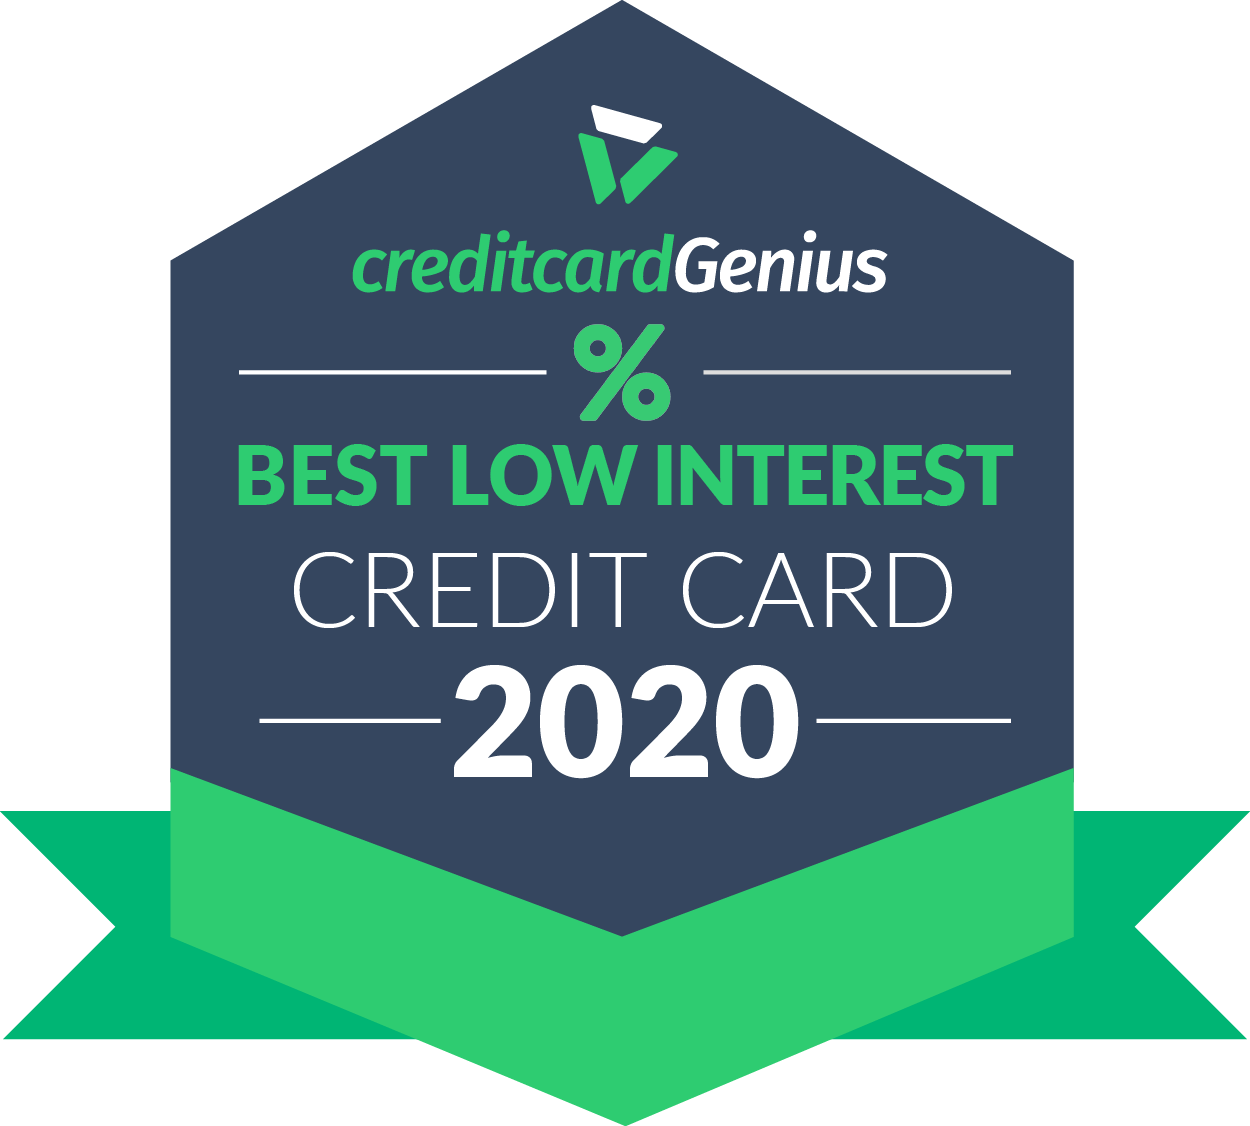 Best low interest credit card in Canada for 2020 award seal